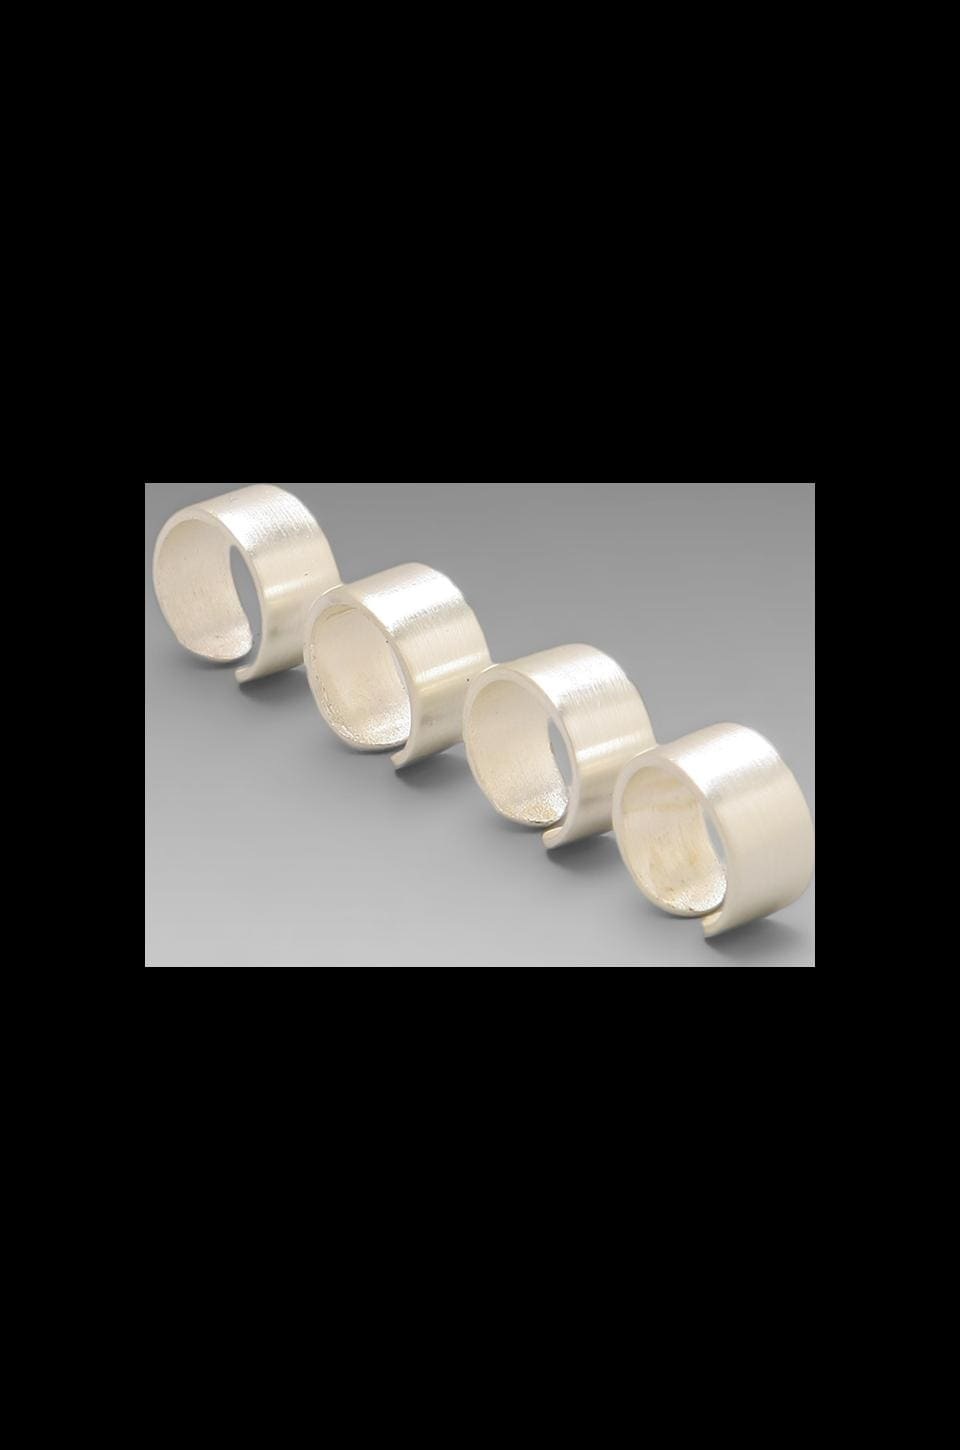 Luv AJ The Plain Ring Tall (Set of 4) in Brushed Silver